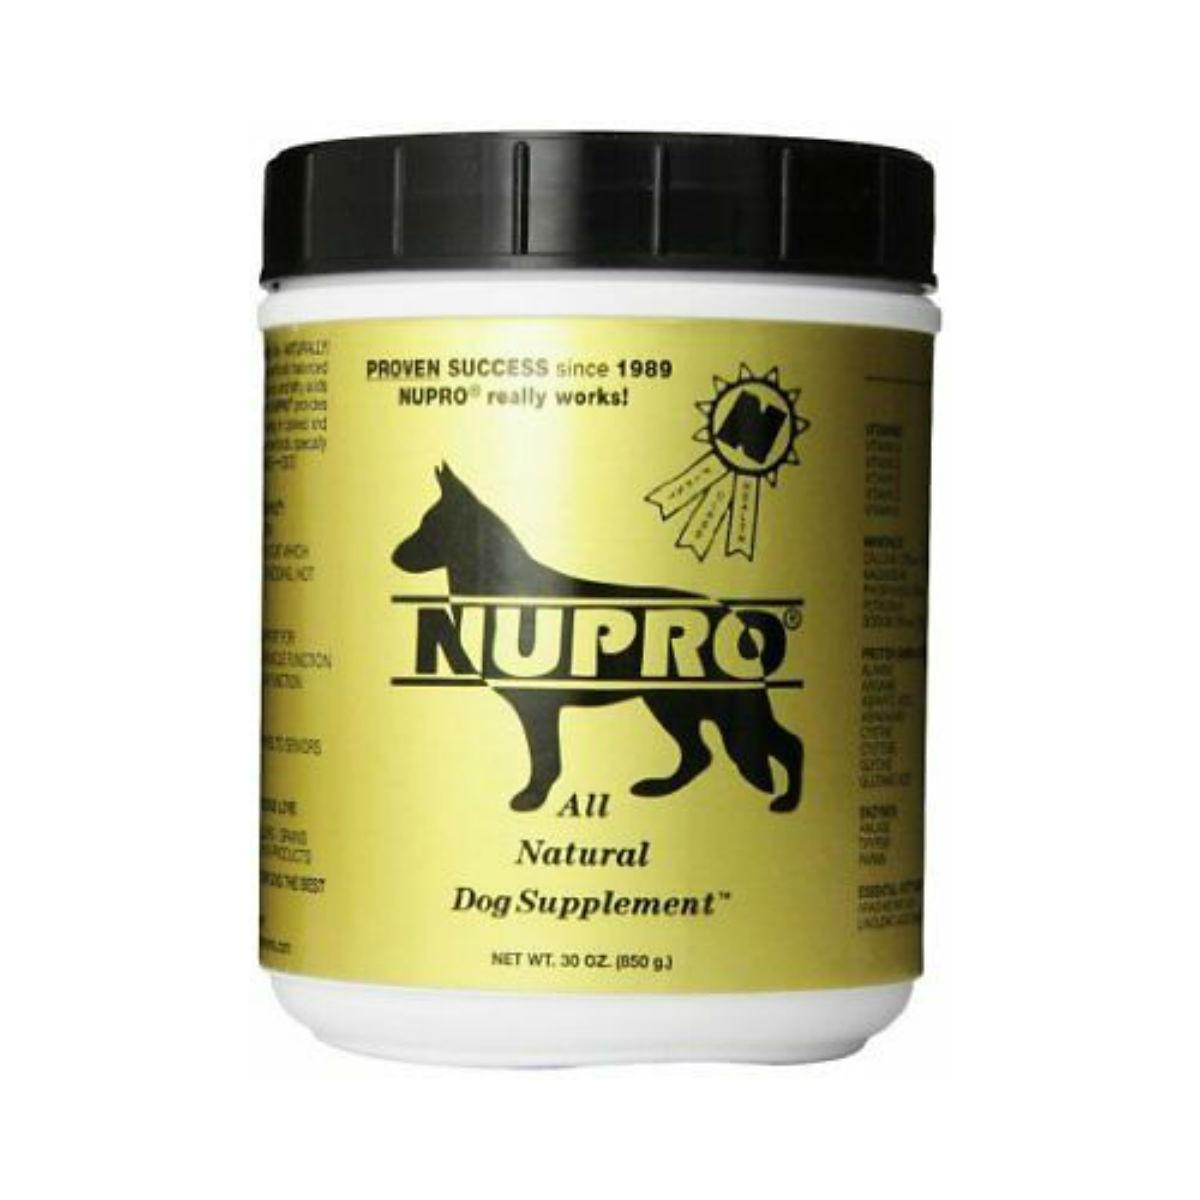 Nupro All Natural Dog Supplements